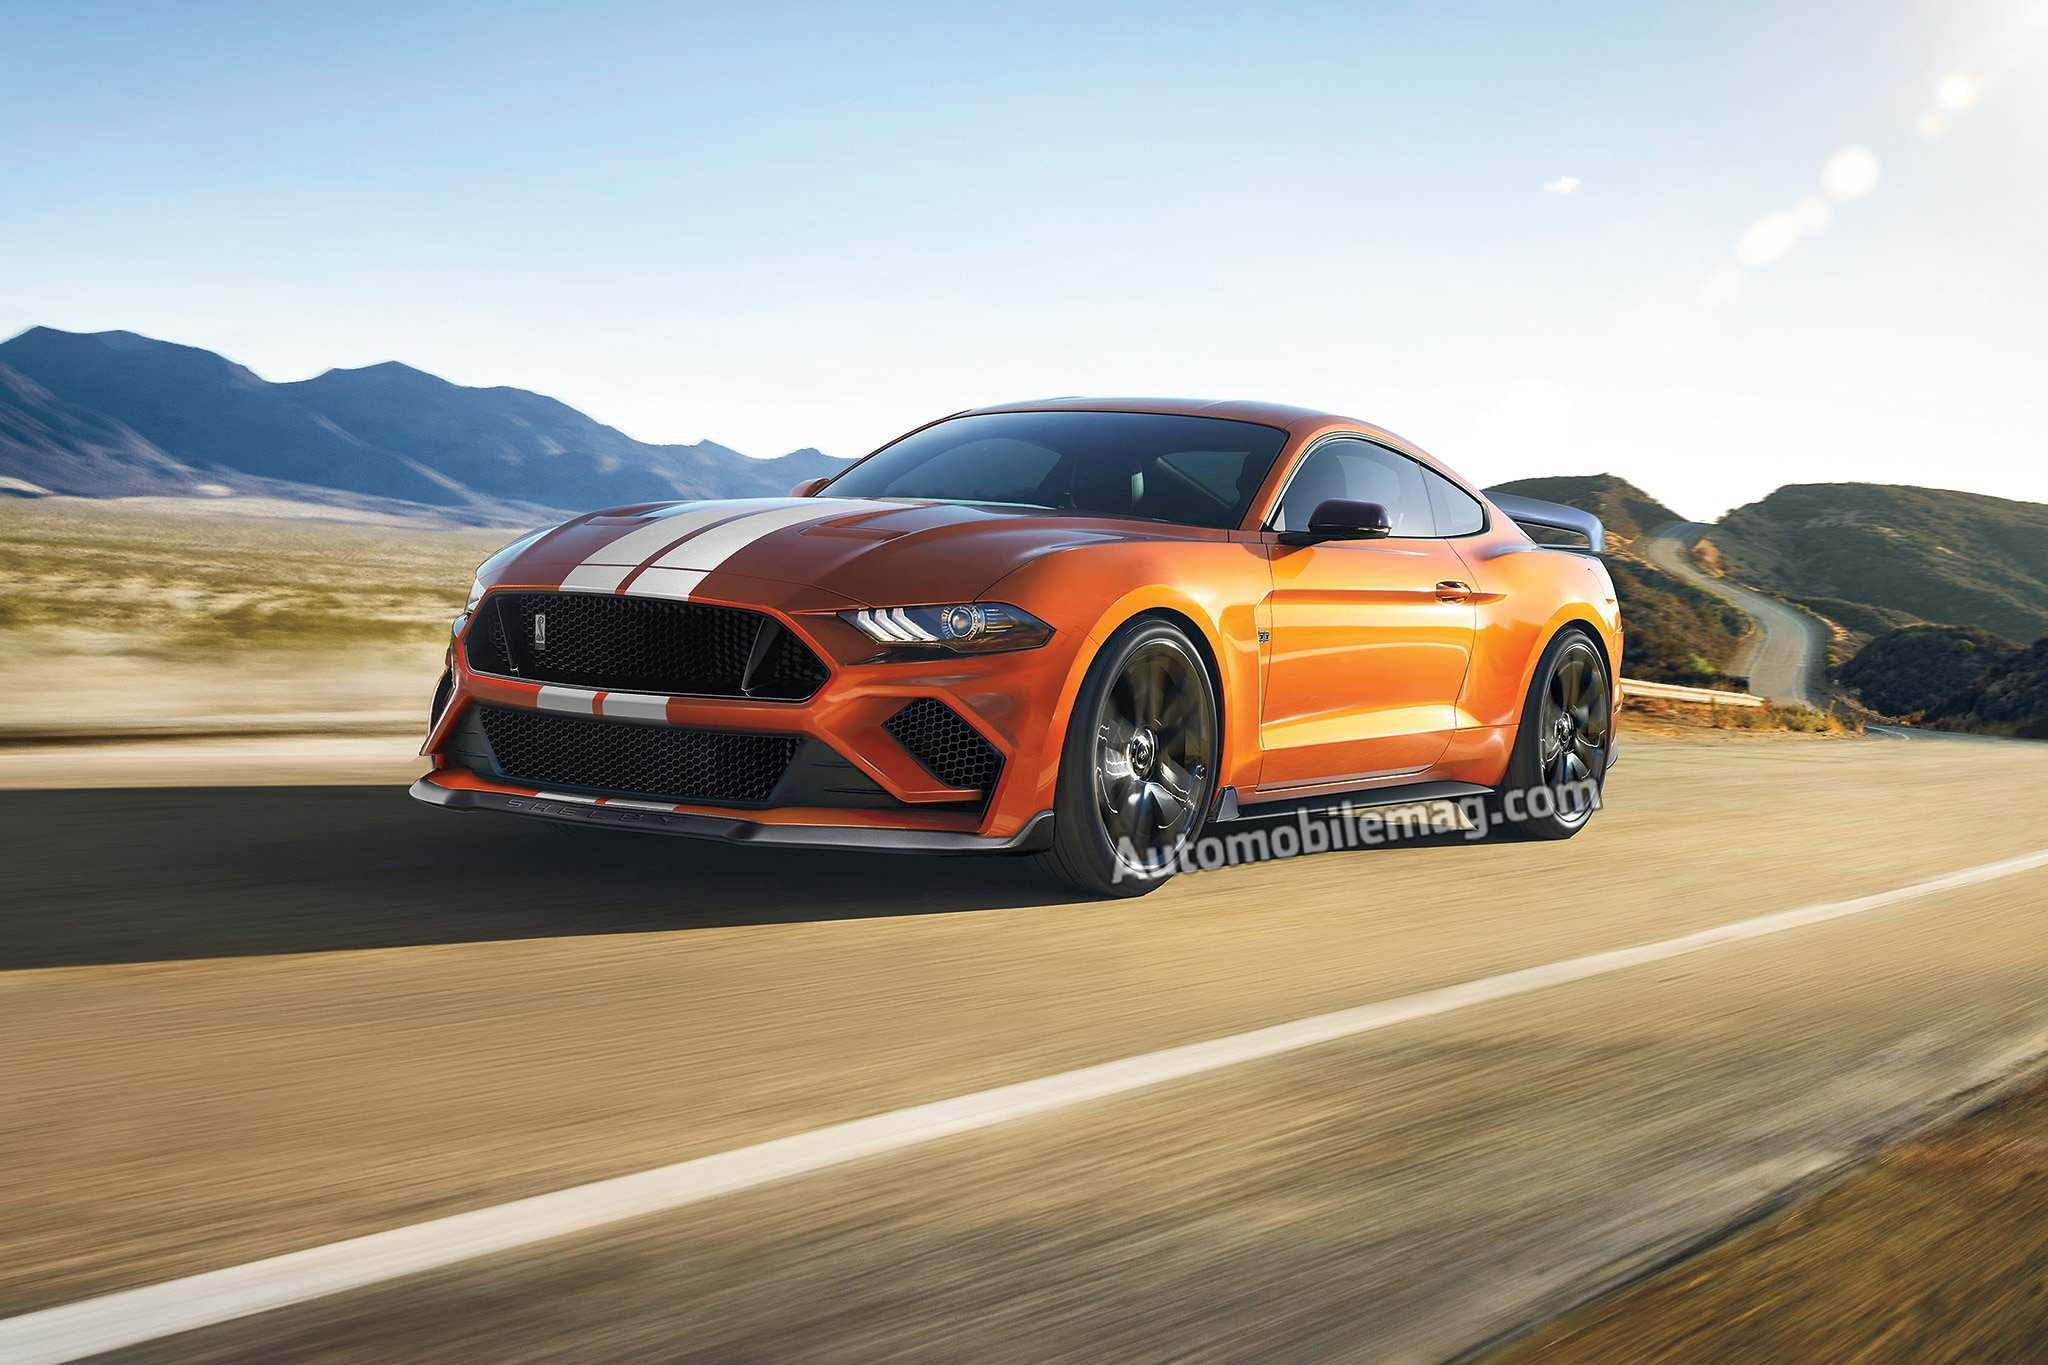 89 Concept of 2019 Ford Gt 500 Prices for 2019 Ford Gt 500